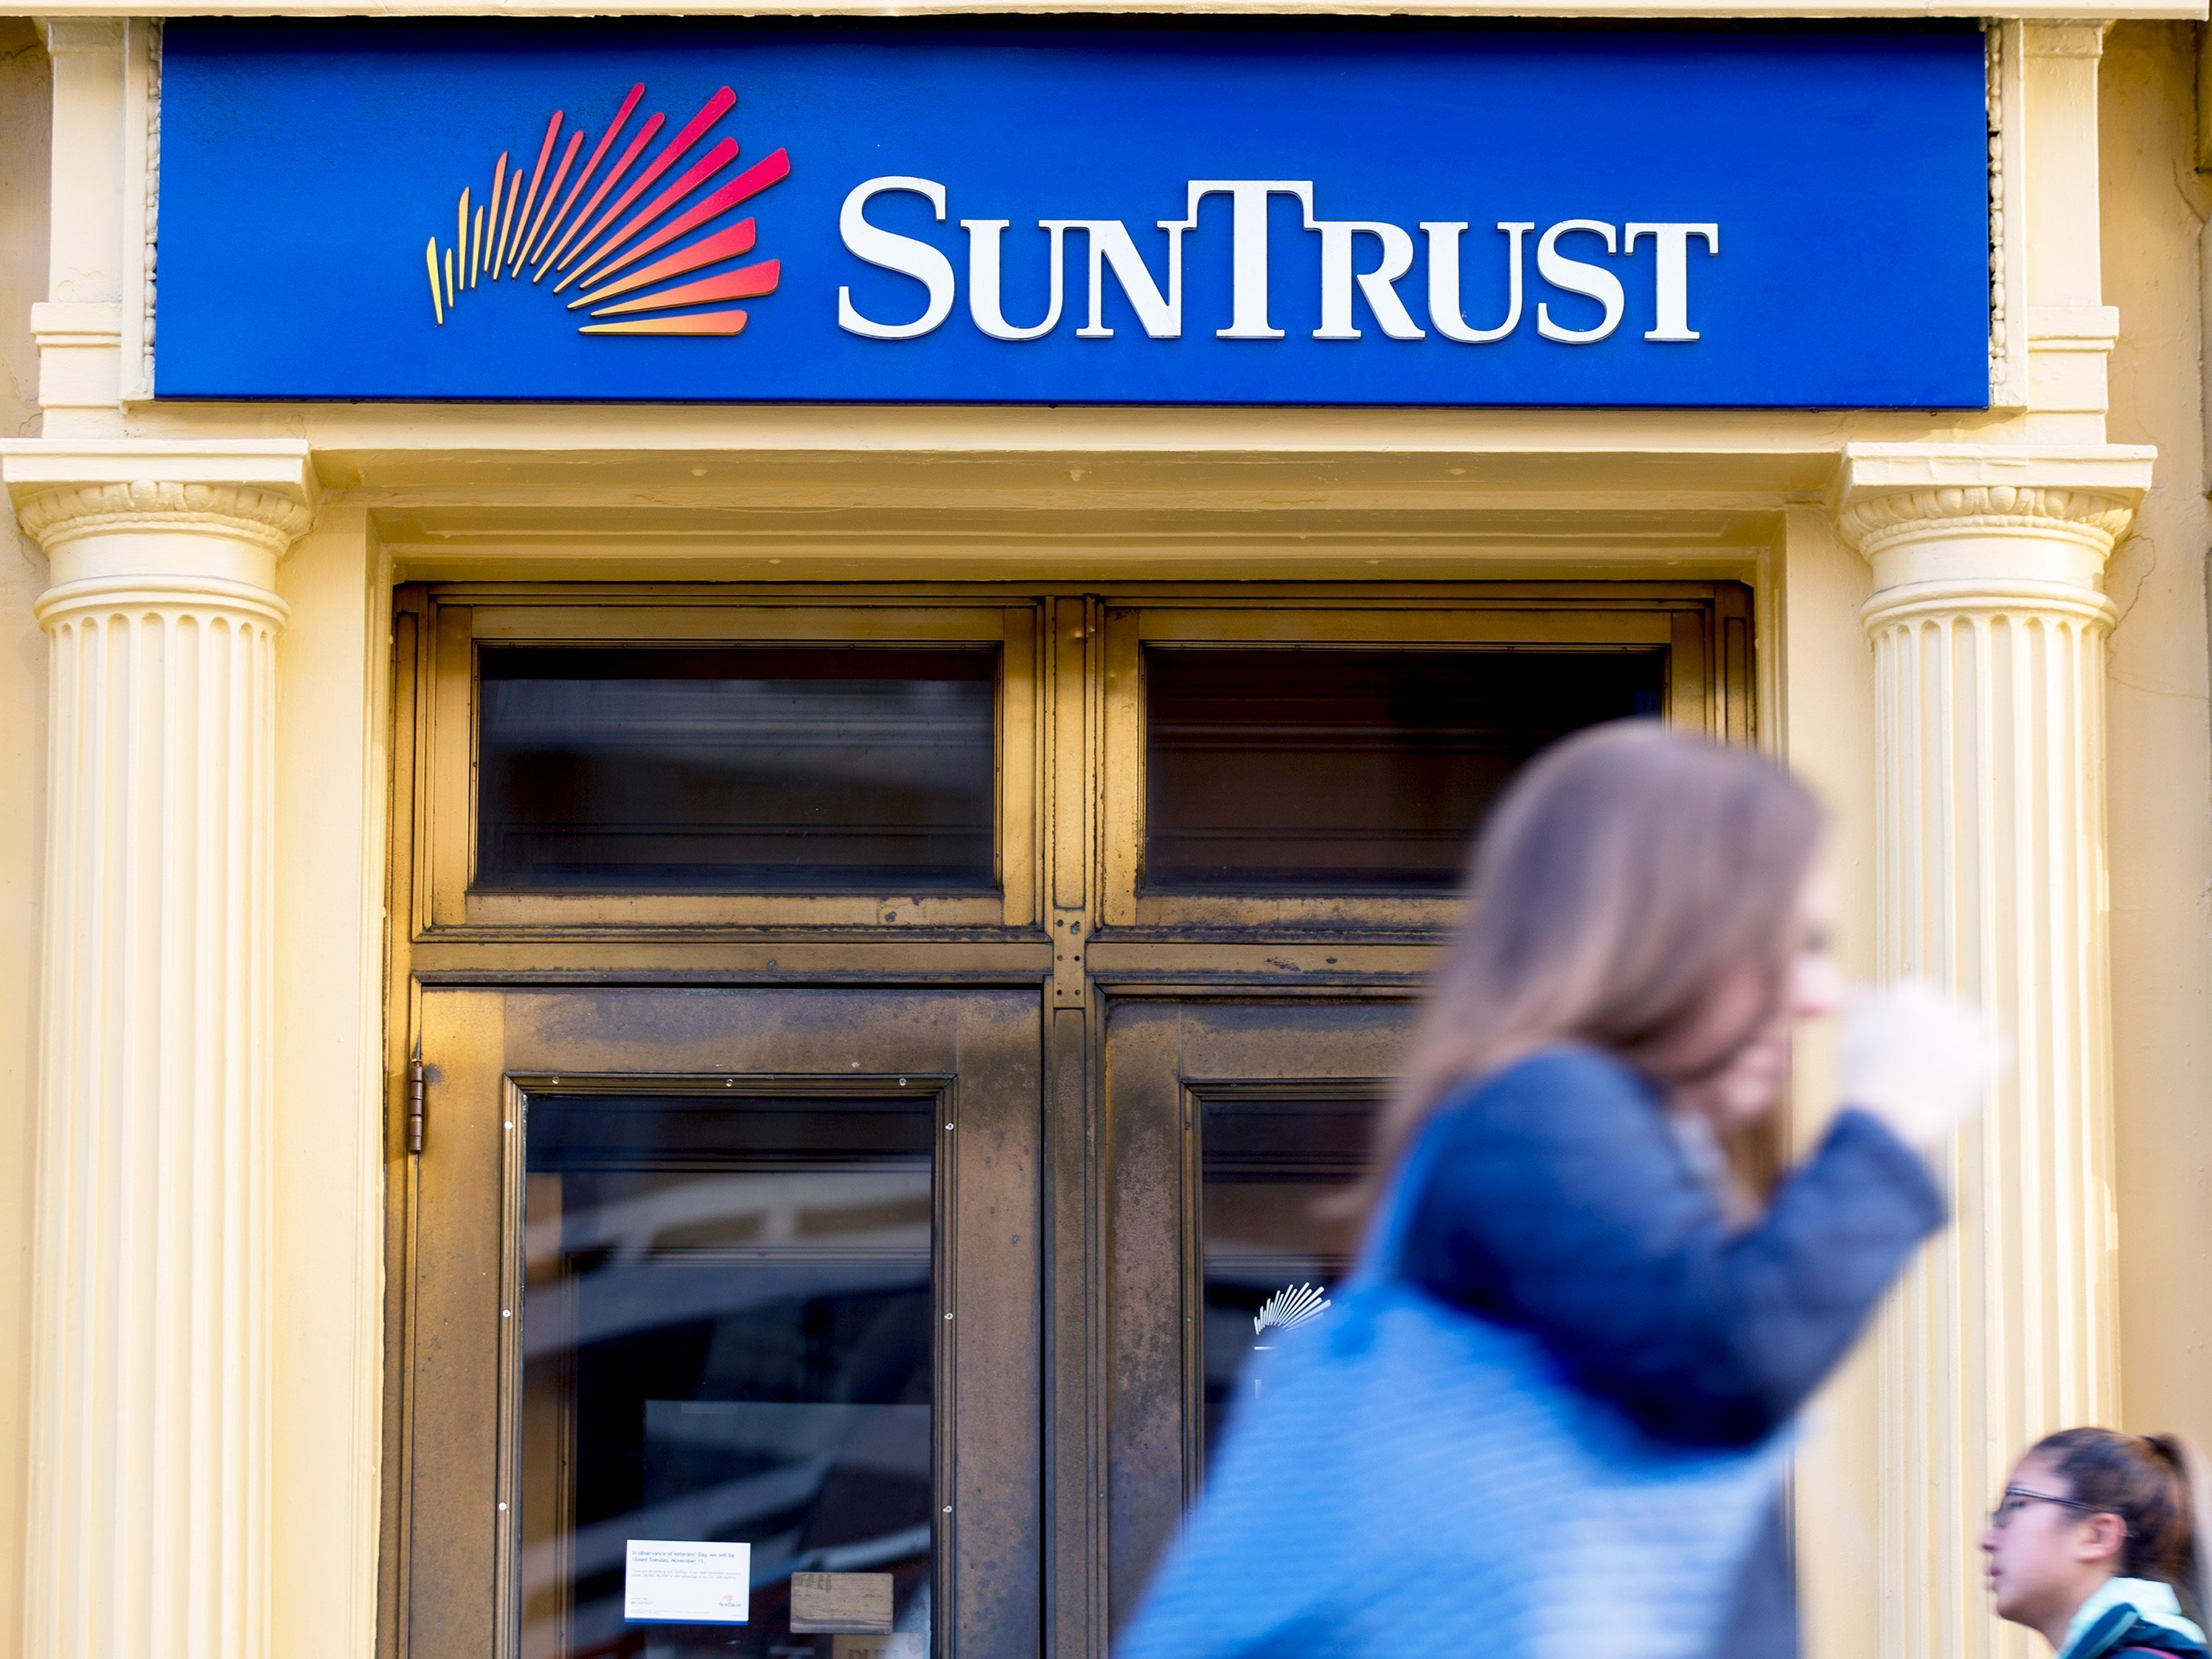 SunTrust says ex-employee may have tried to steal customer data